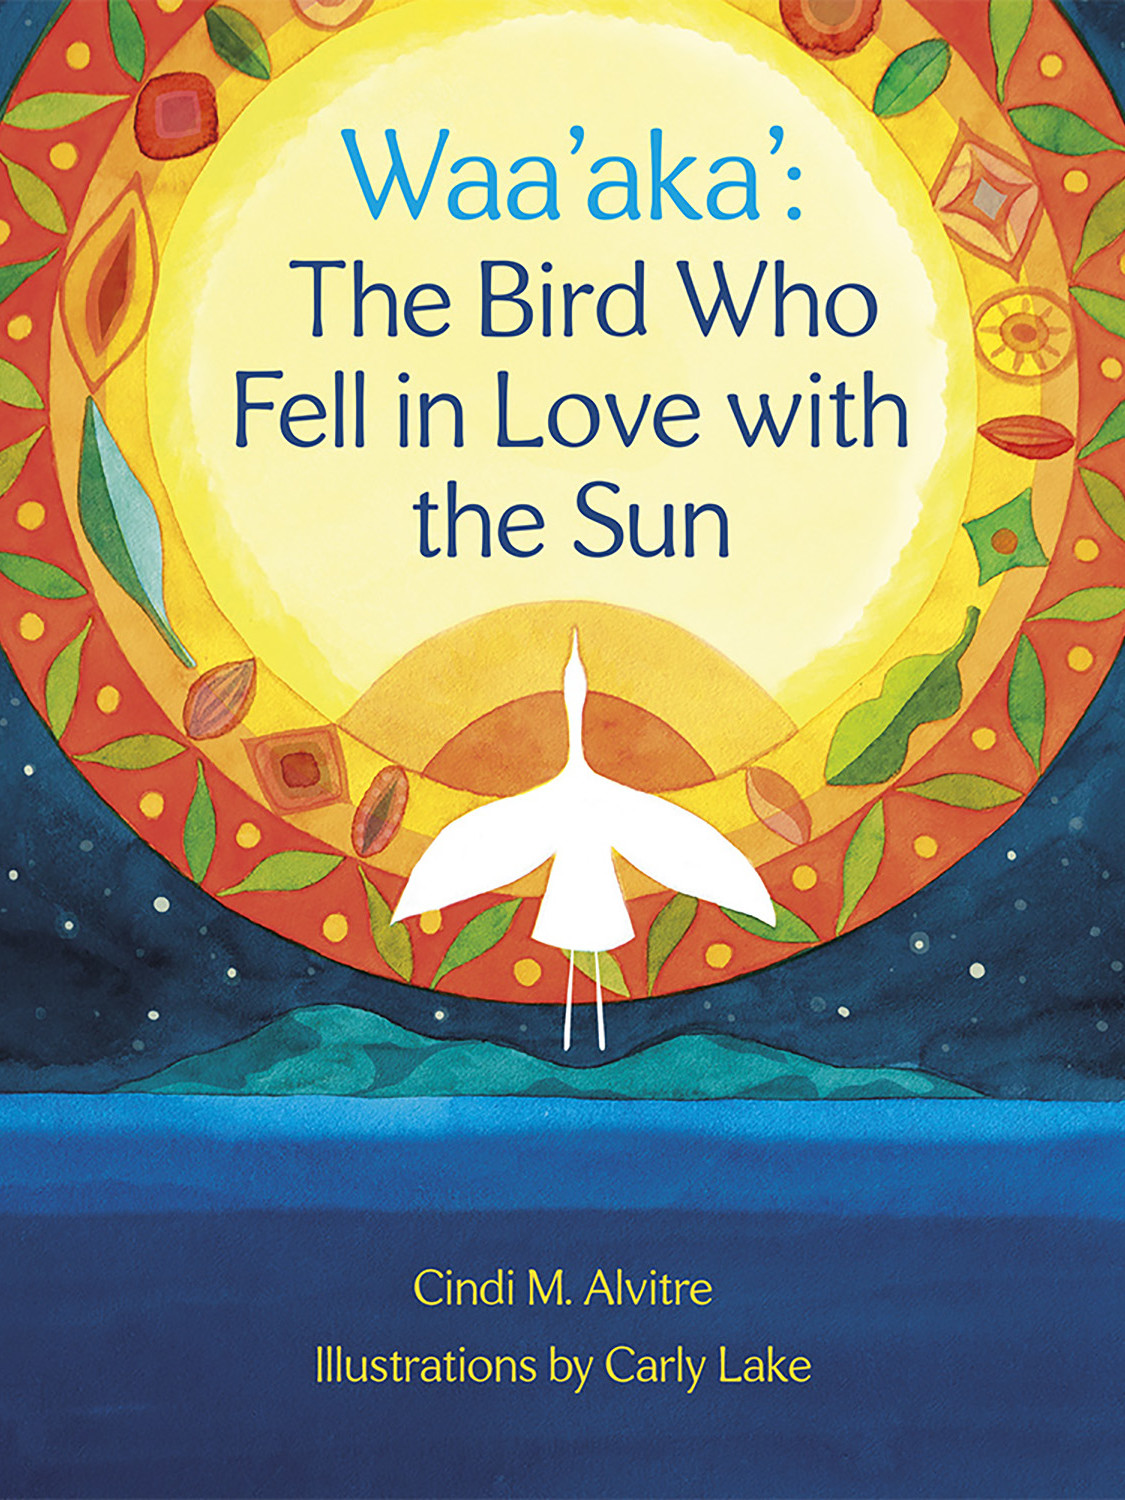 photo of a book titled Waa'aka': The Bird Who Fell in Love with the Sun